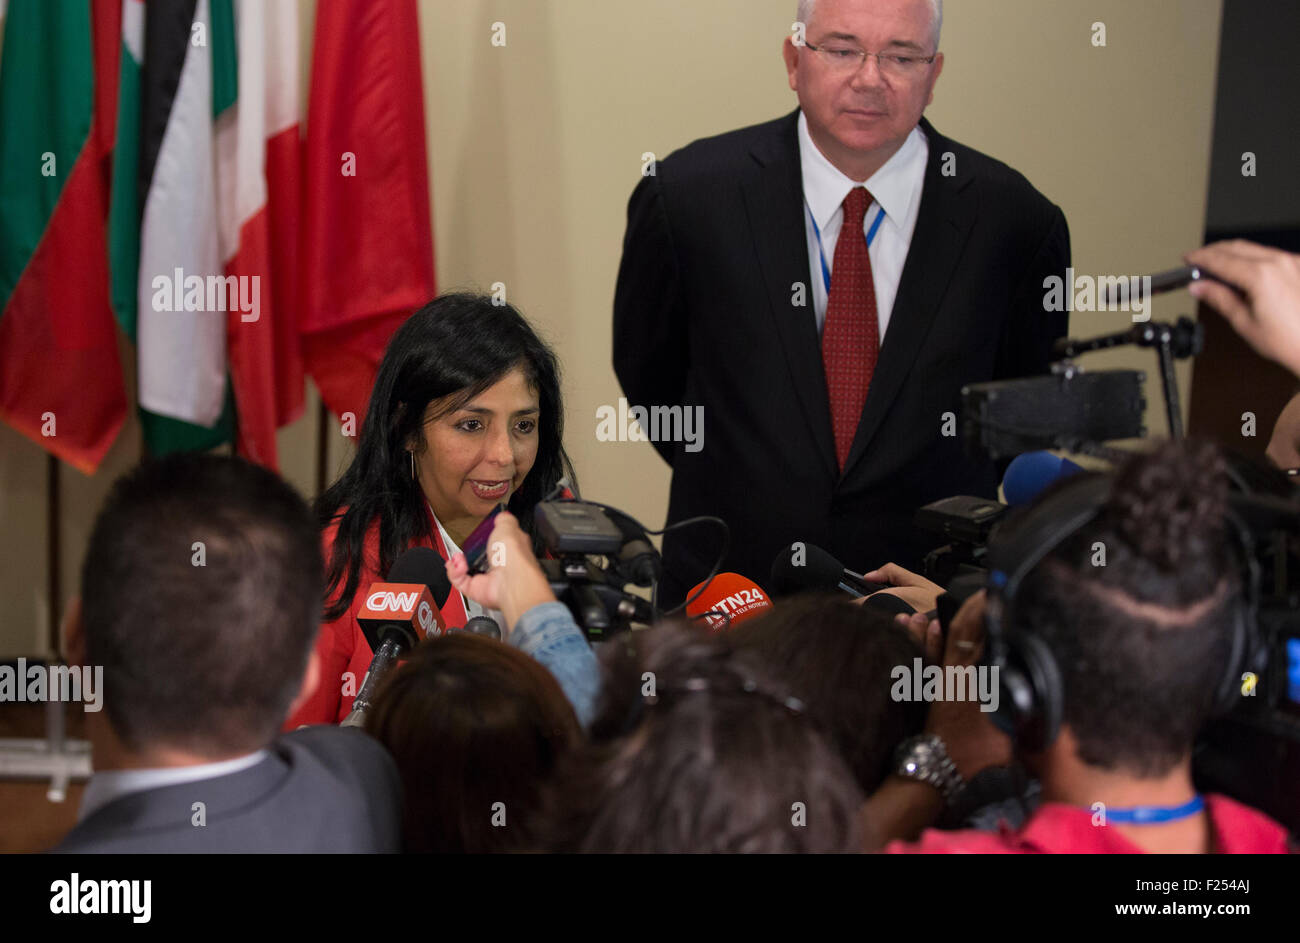 New York City, United States. 11th Sep, 2015. Press Conference by Delcy Eloina Rodriguez Gomez, Minister for Foreign - Stock Image